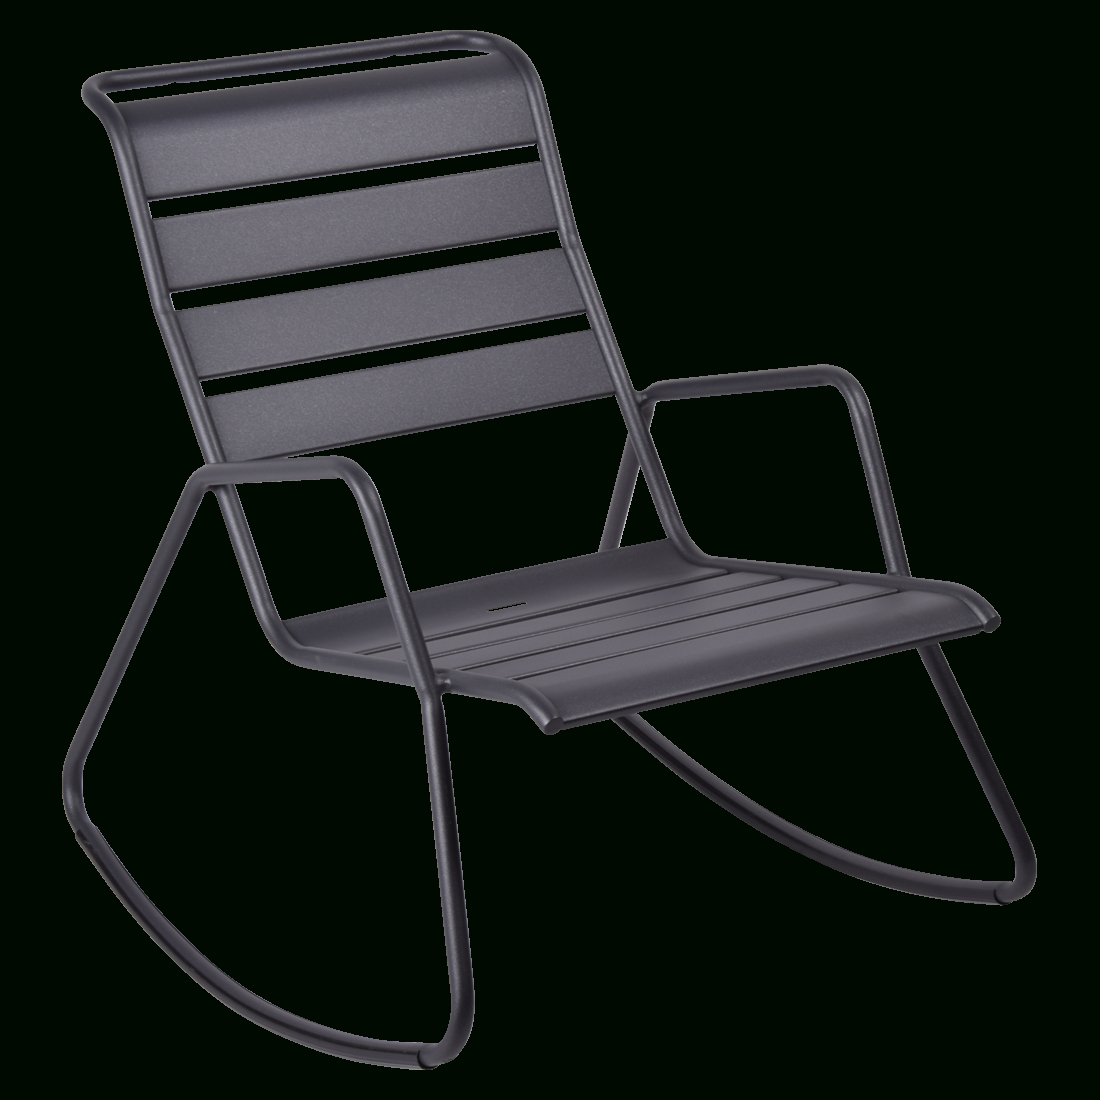 Monceau Rocking Chair, For Outdoor Living Space destiné Rocking Chair De Jardin